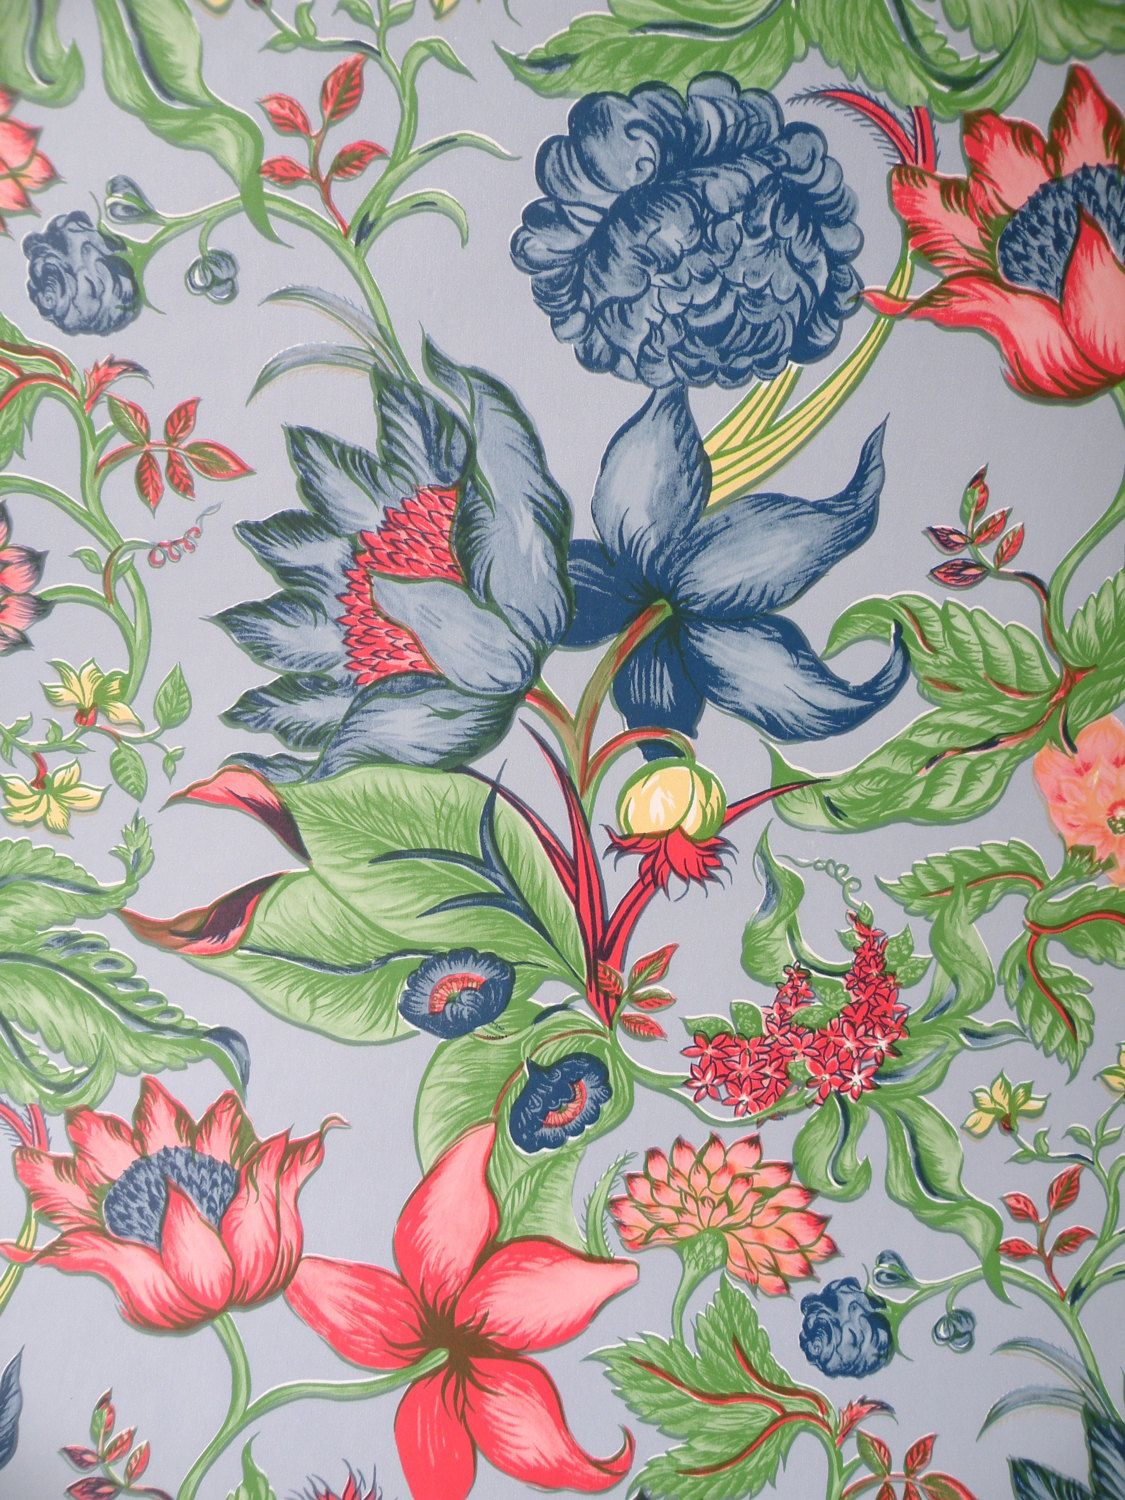 1125x1500 Vintage Floral Wallpaper-Vinyl Wallpaper-Watercolor